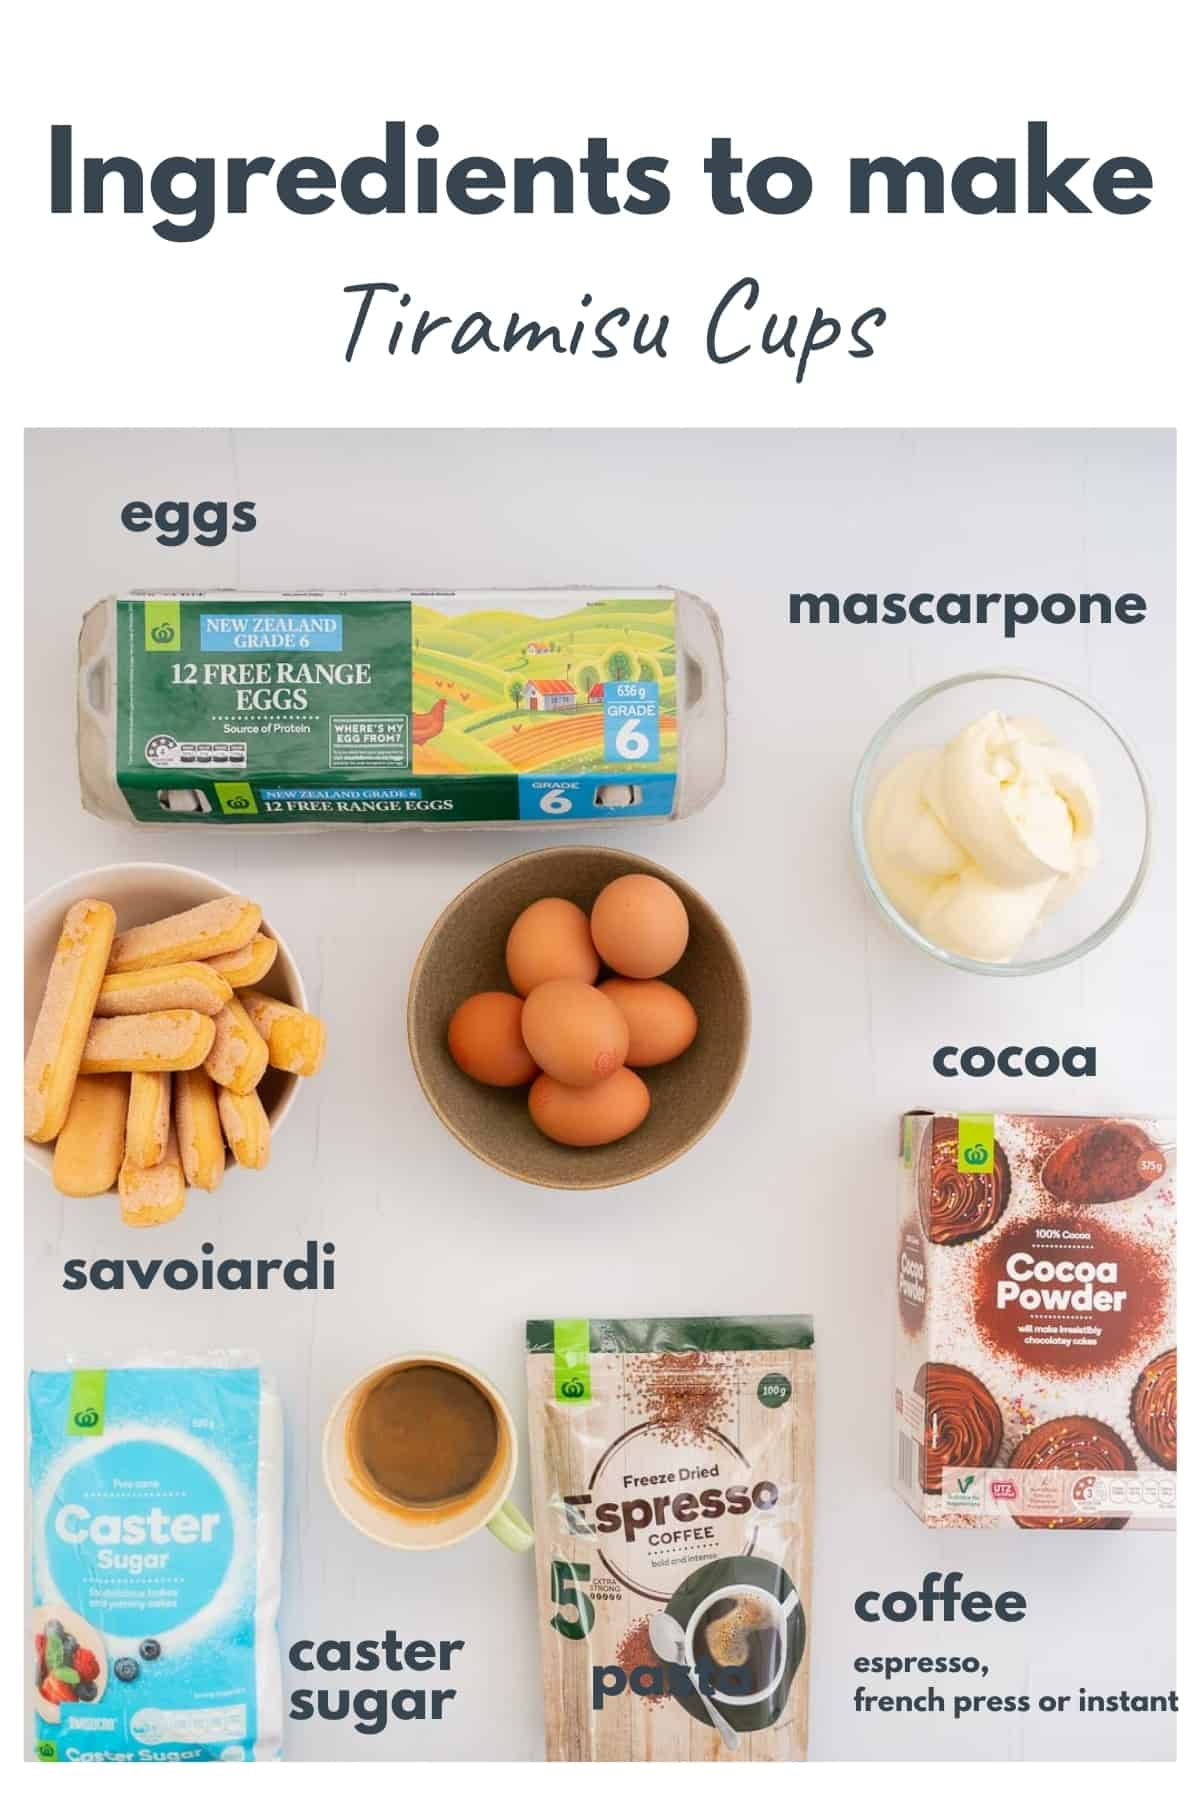 The ingredients to make tiramisu cups laid out on a bench top with text overlay.